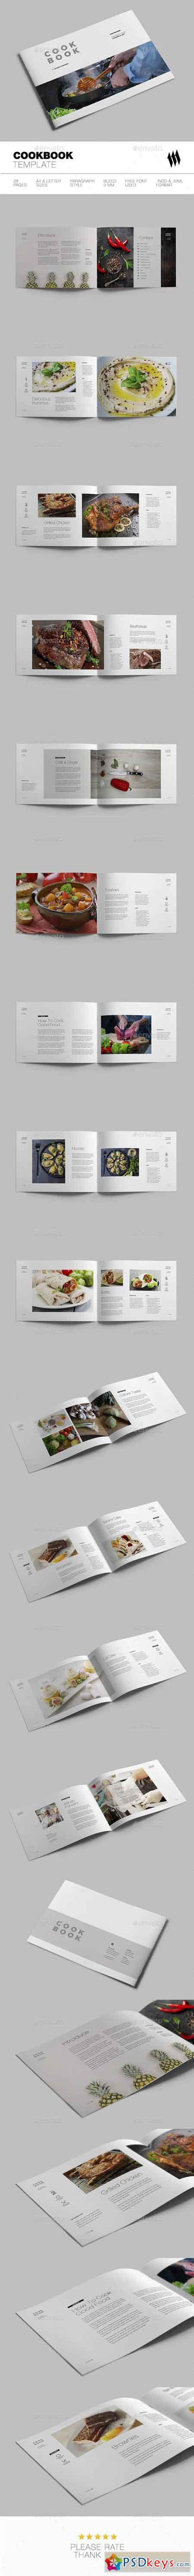 Cookbook Template 19341639 » Free Download Photoshop Vector Stock ...